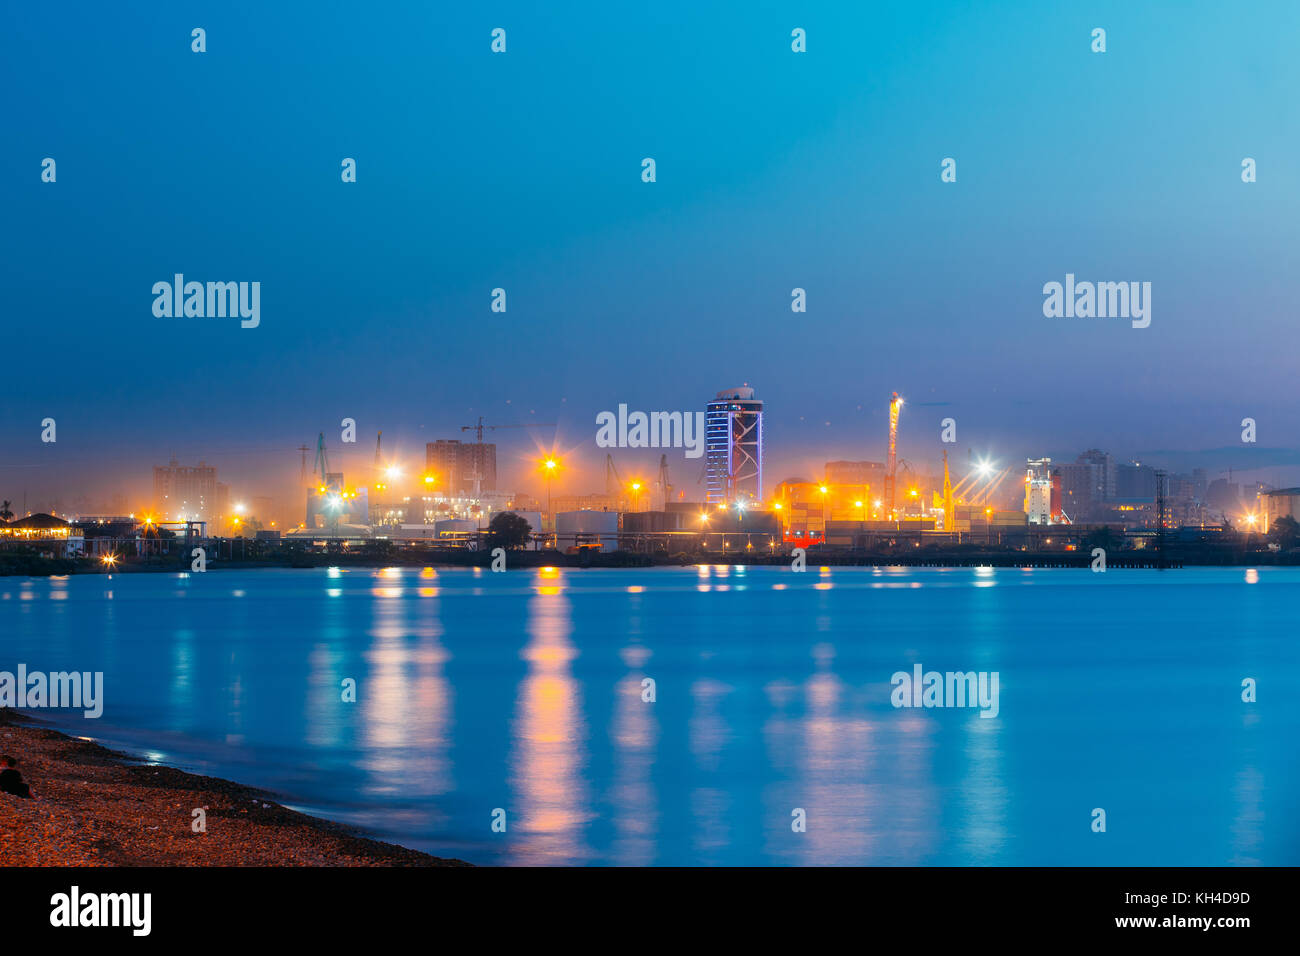 Batumi, Adjara, Georgia. Port Dock On Sunny Evening Or Night At Illuminations Lights. - Stock Image